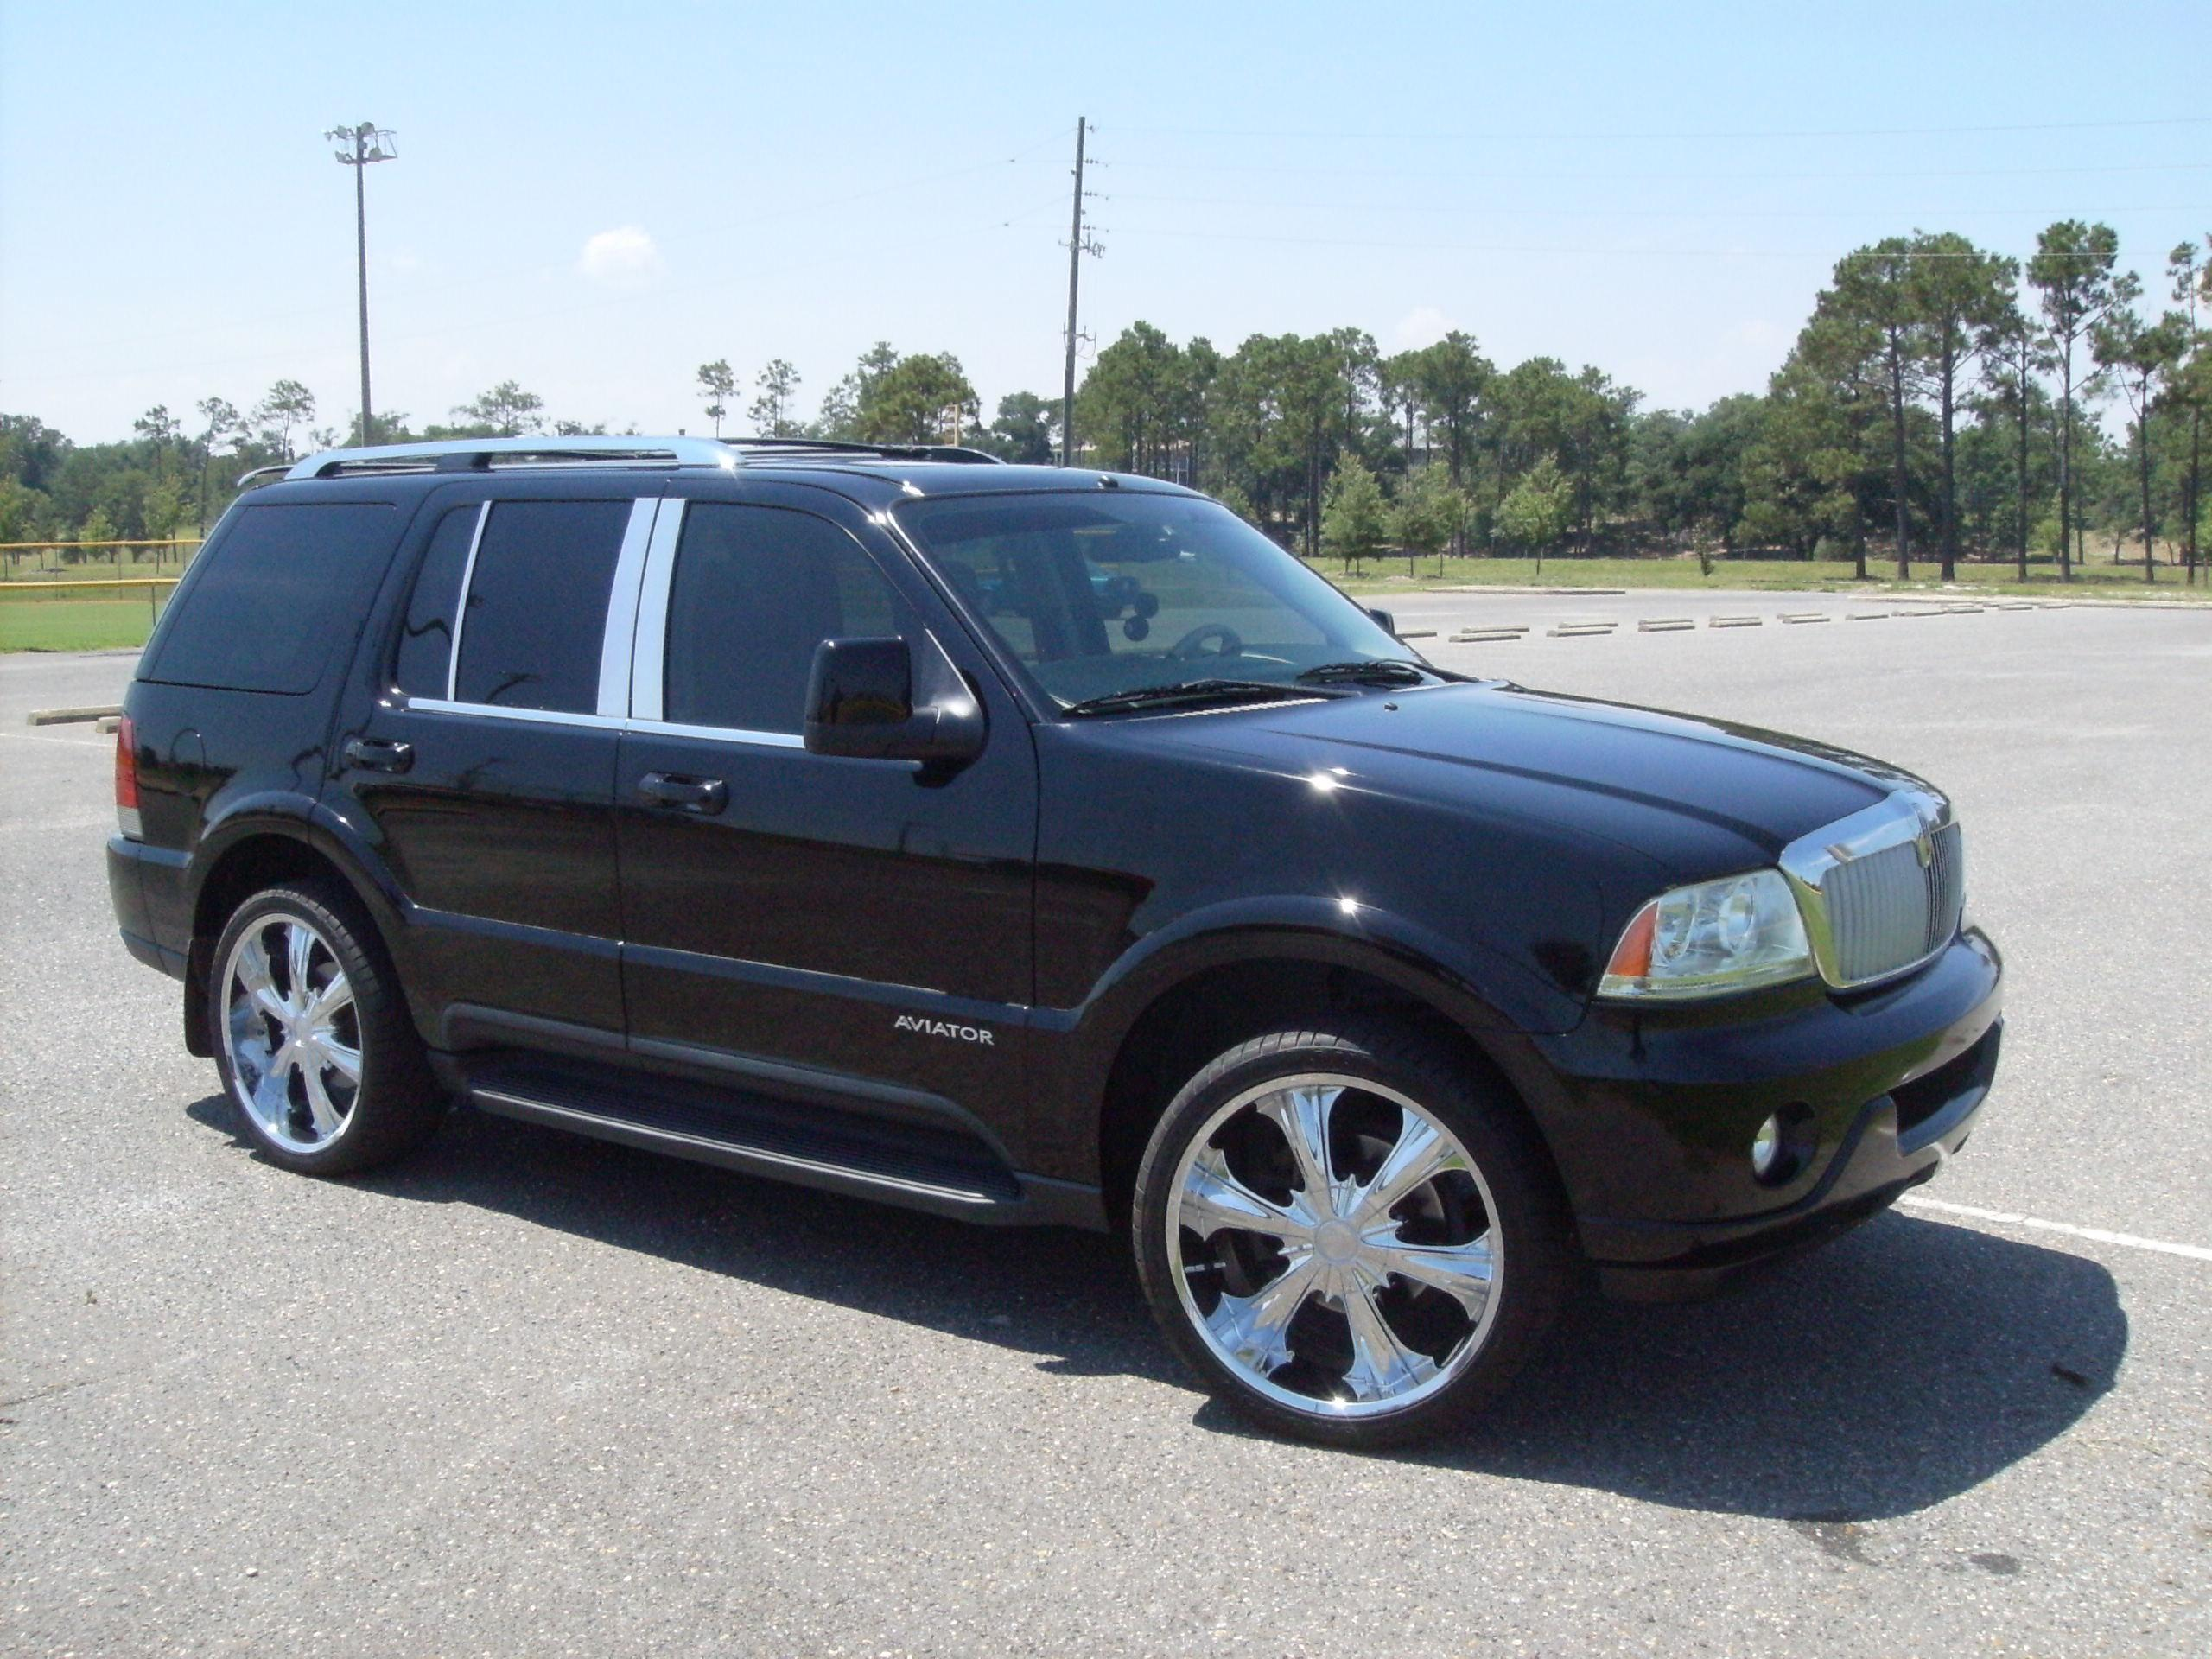 2003 Lincoln Aviator Tailgate Bing images